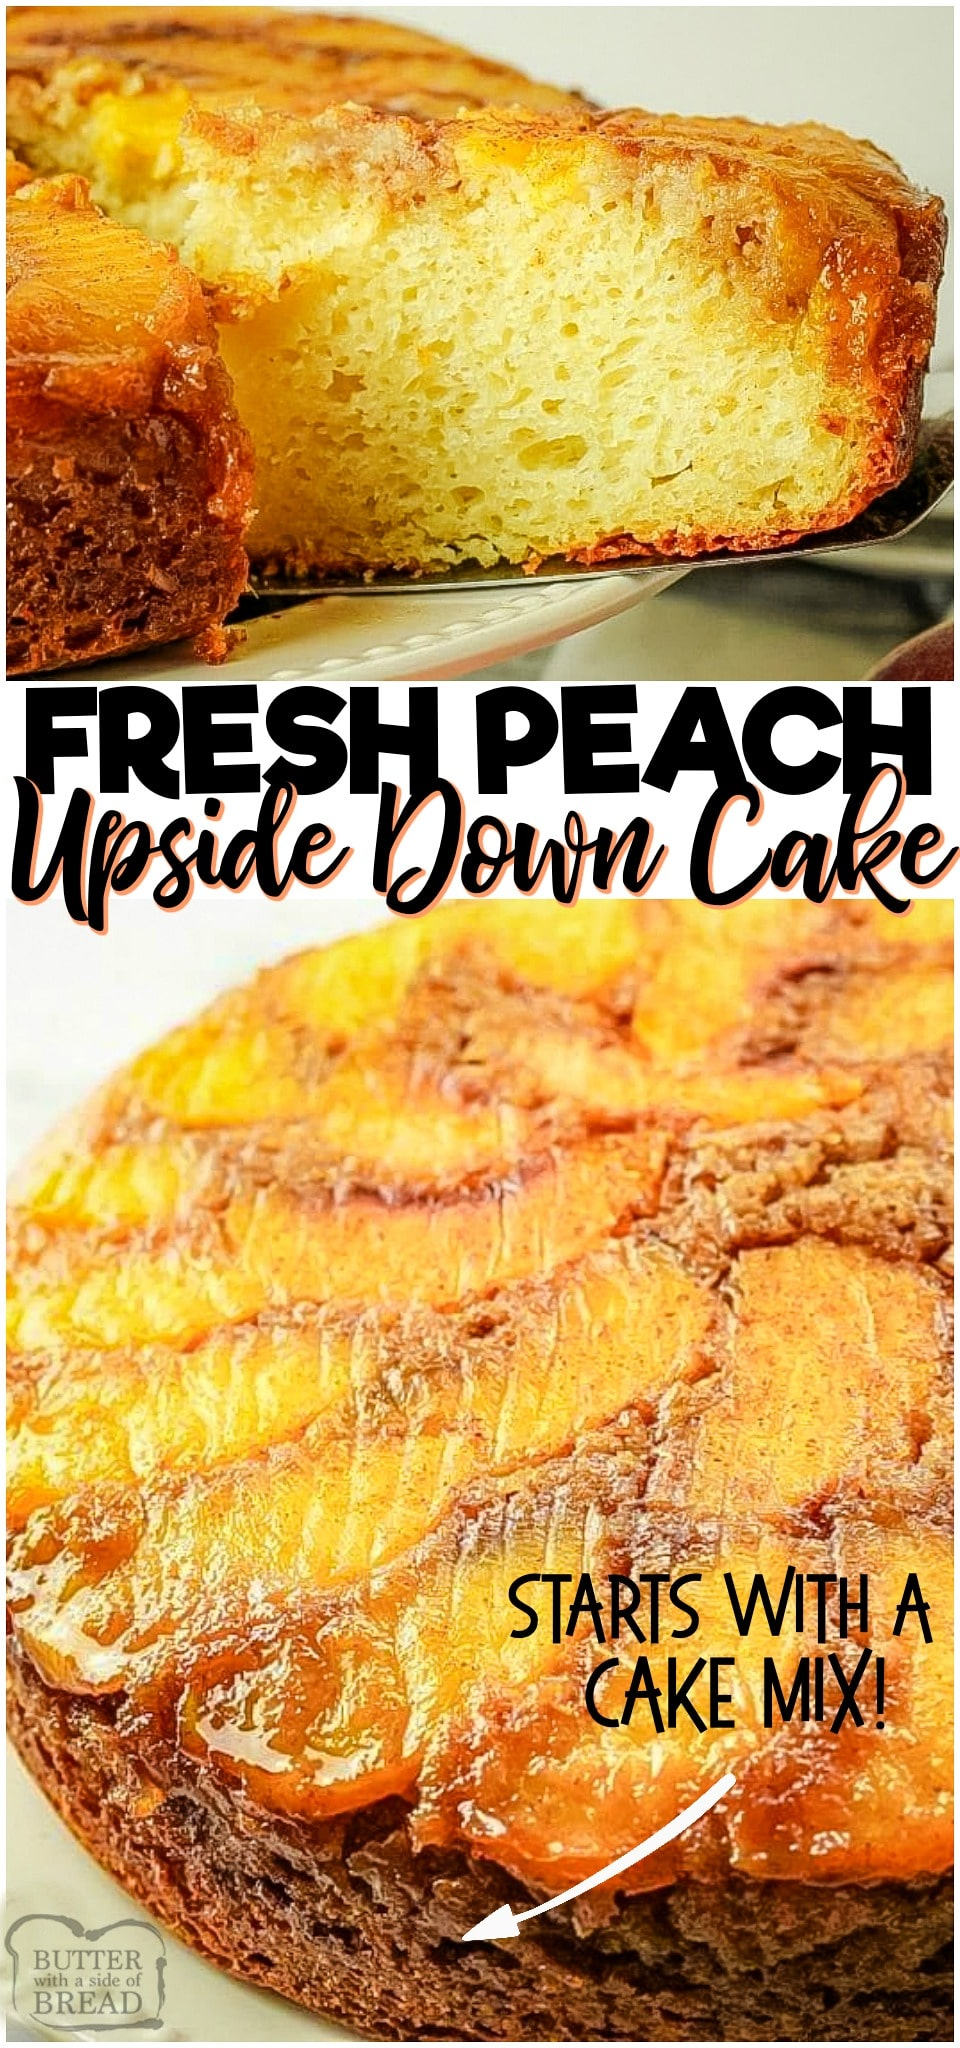 Peach Upside Down Cake is an amazing peach cake recipe with a handful of pantry ingredients + peaches!  This cake is the perfect way to enjoy fresh #peaches! #cake #upsidedown #peach #baking #dessert #upsidedowncake #recipe from BUTTER WITH A SIDE OF BREAD